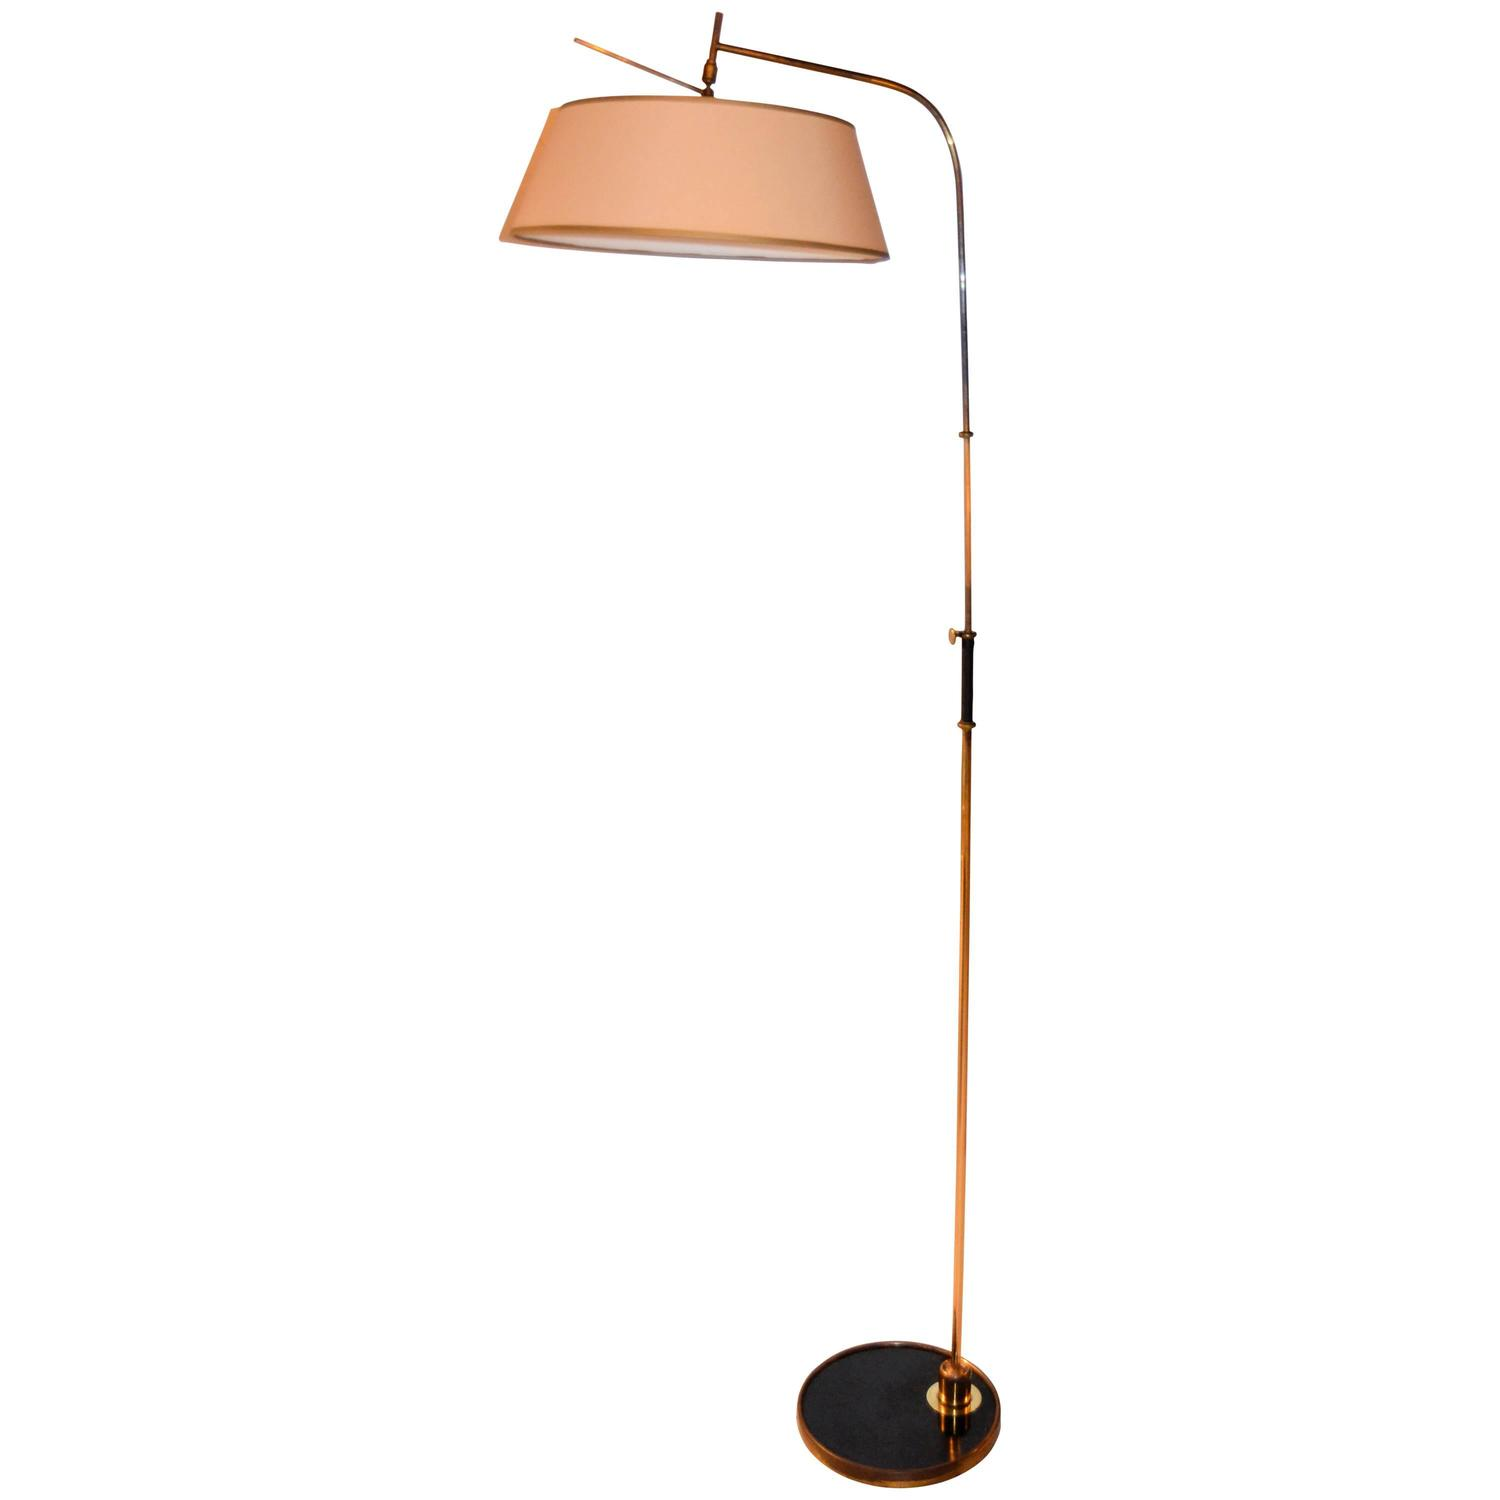 Lunel french floor lamp 1950s at 1stdibs for 1950s floor lamps